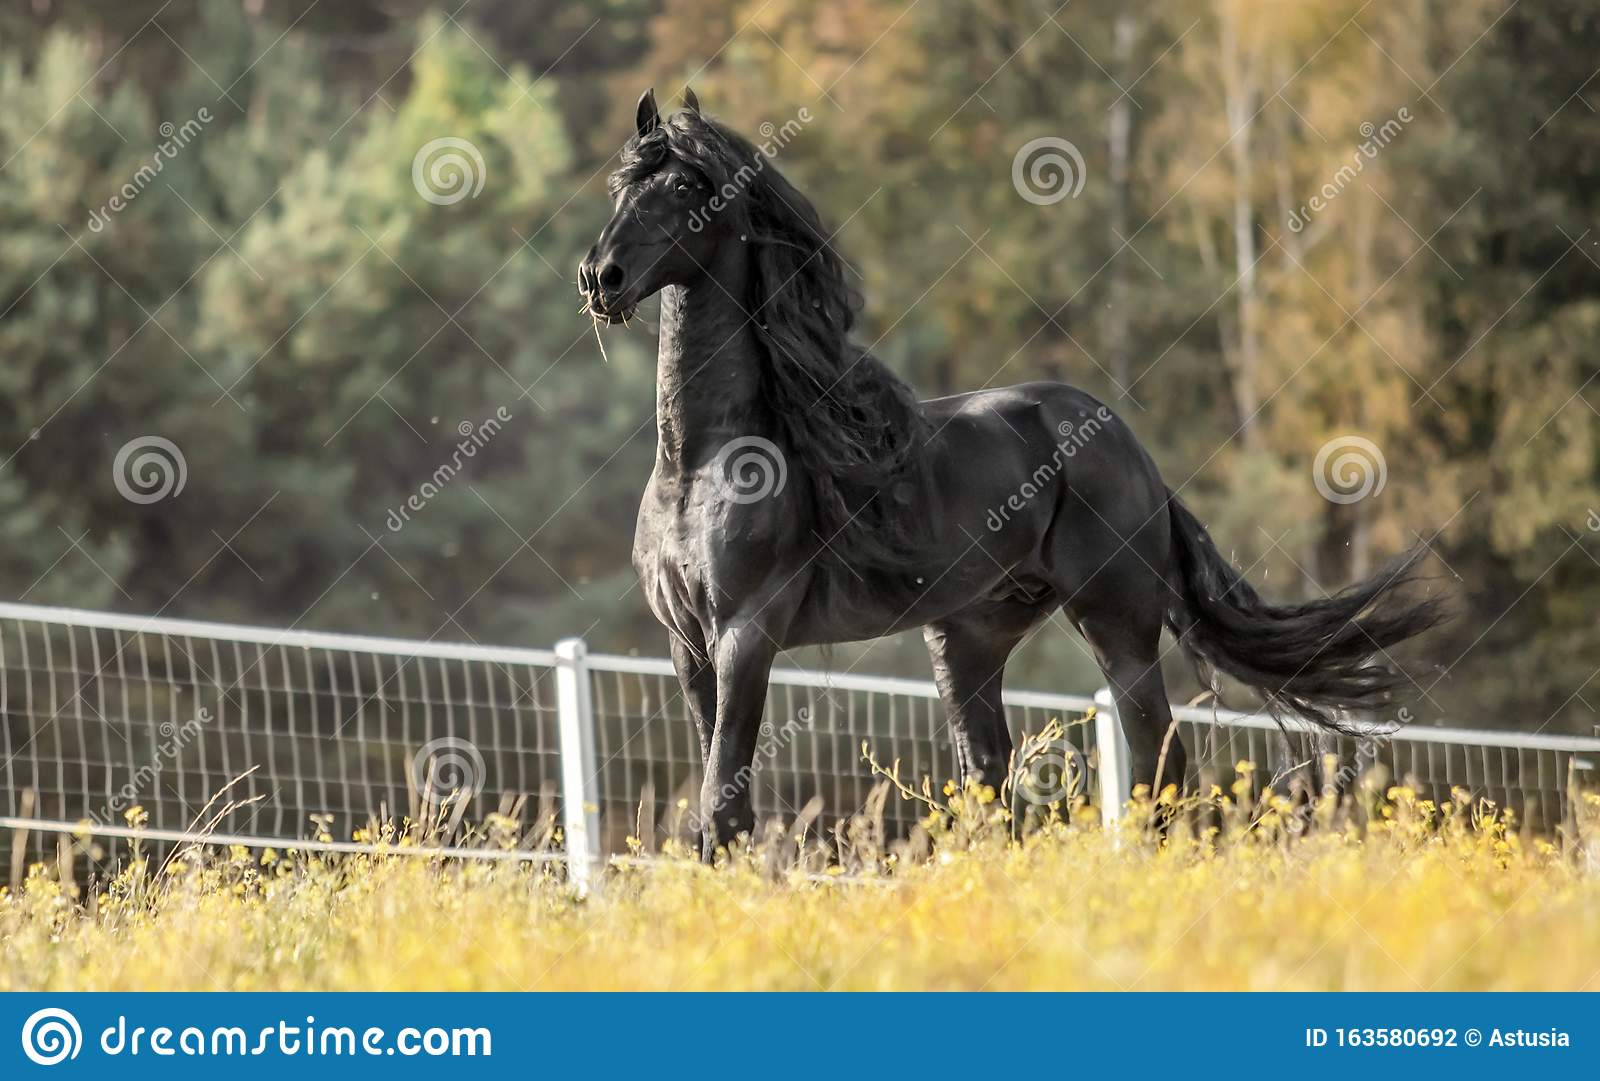 Beautiful Black Horse The Friesian Stallion Gallops On The Autumn Meadow Stock Photo Image Of Black Beautiful 163580692